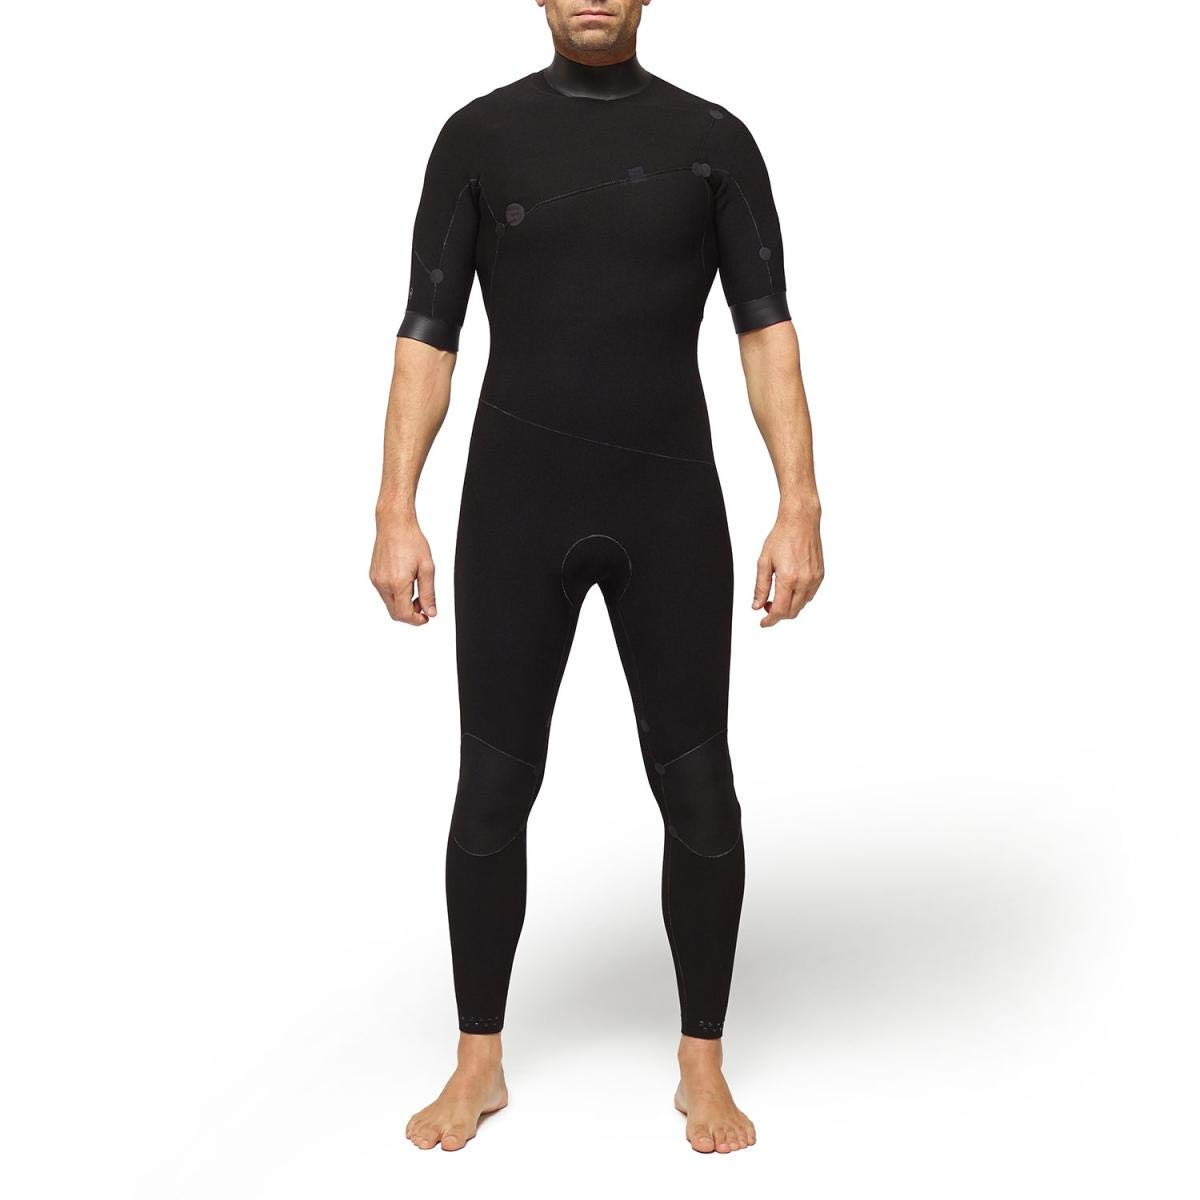 DEEPLY Traje DE Surf Hombre Premium 2/2 ZIPPERLESS Short Sleeves: Amazon.es: Deportes y aire libre